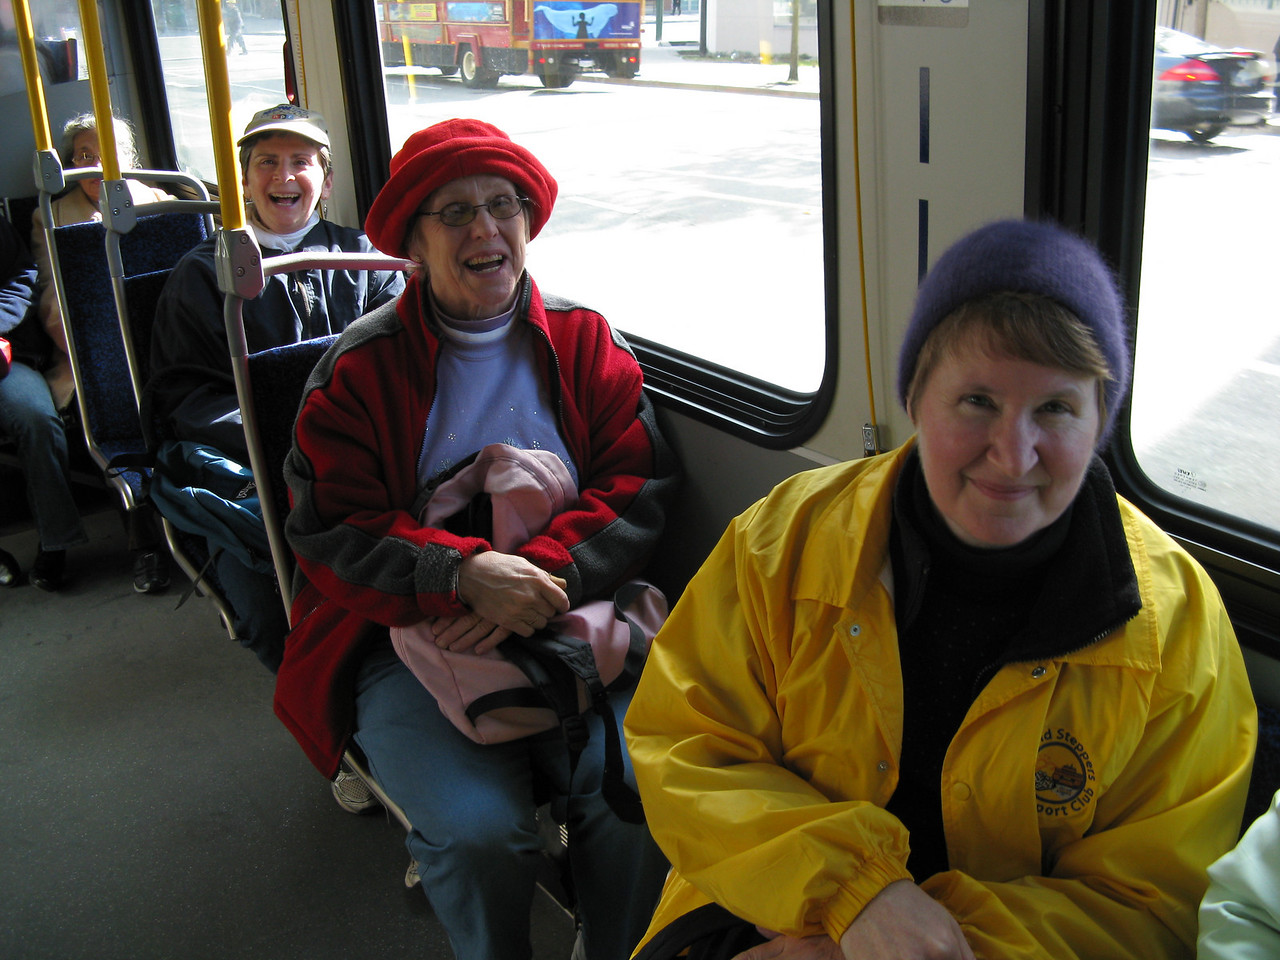 Seats opened up after getting through Chinatown on West Pender Avenue.  (front to back) Mary, Carolyn and Sherry.